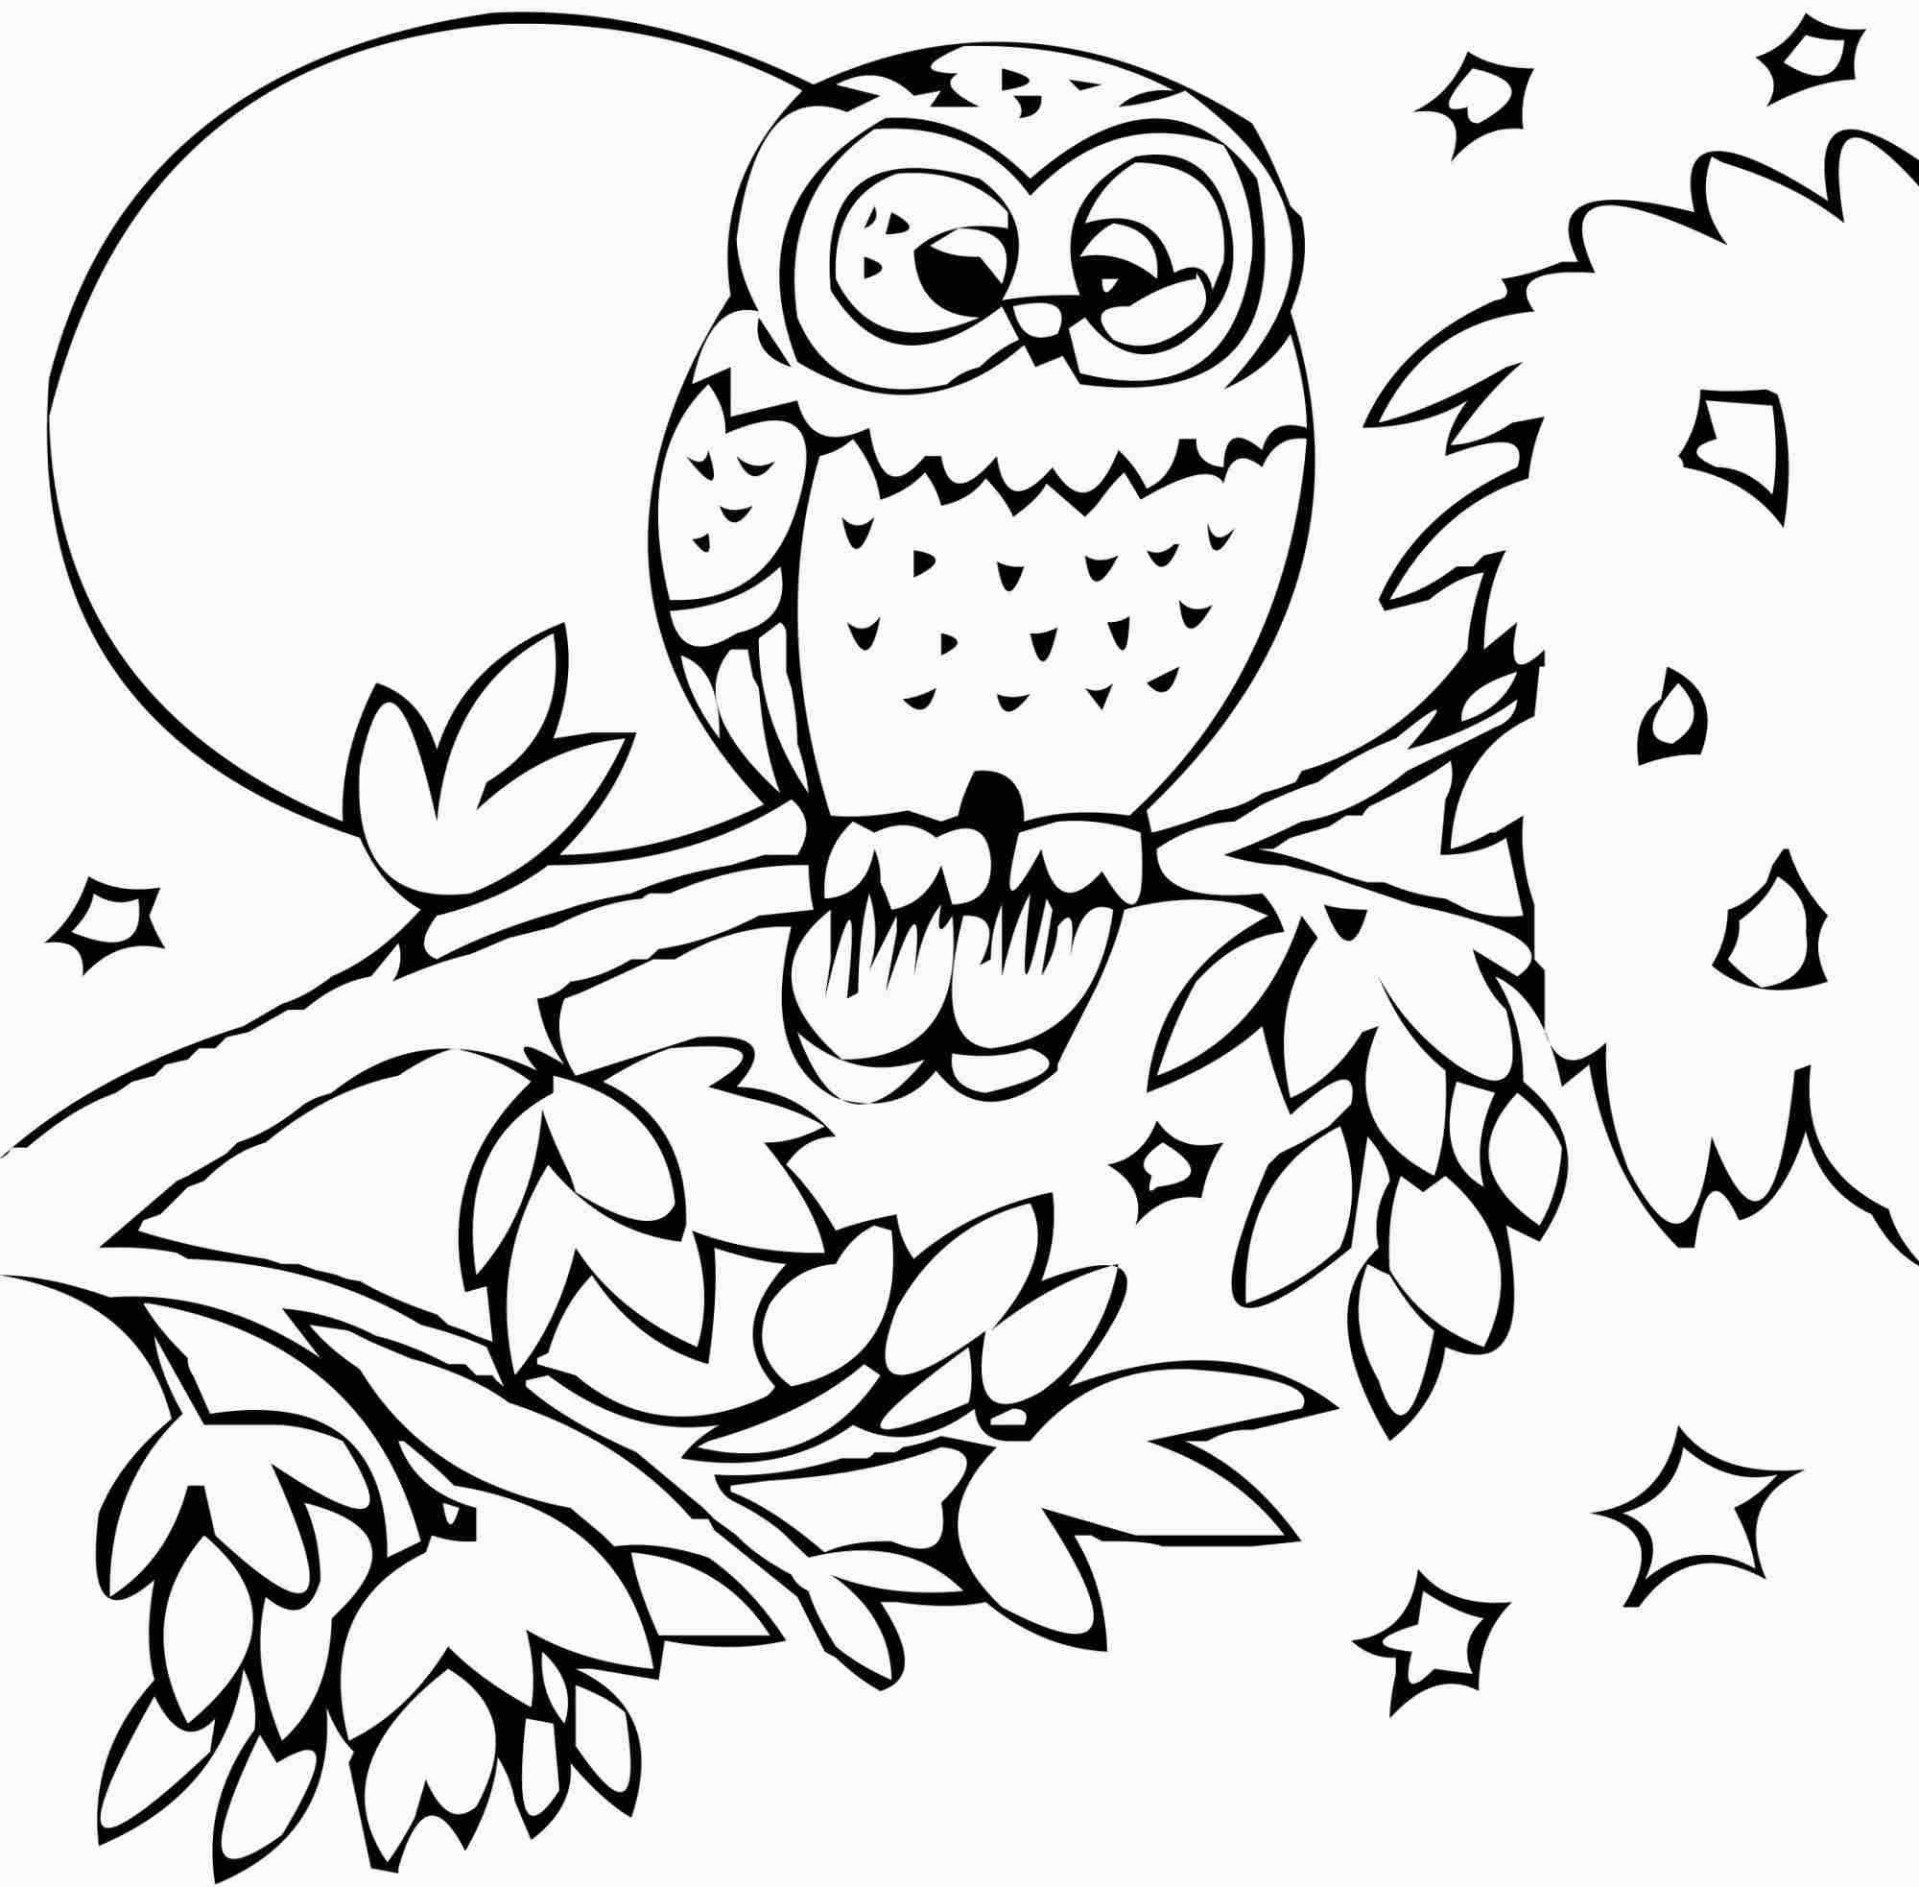 Zoo Animals Coloring Pages Zoo Animals Coloring Page For Kids Animal Pages Printables Sheets Entitlementtrap Com Owl Coloring Pages Moon Coloring Pages Zoo Animal Coloring Pages